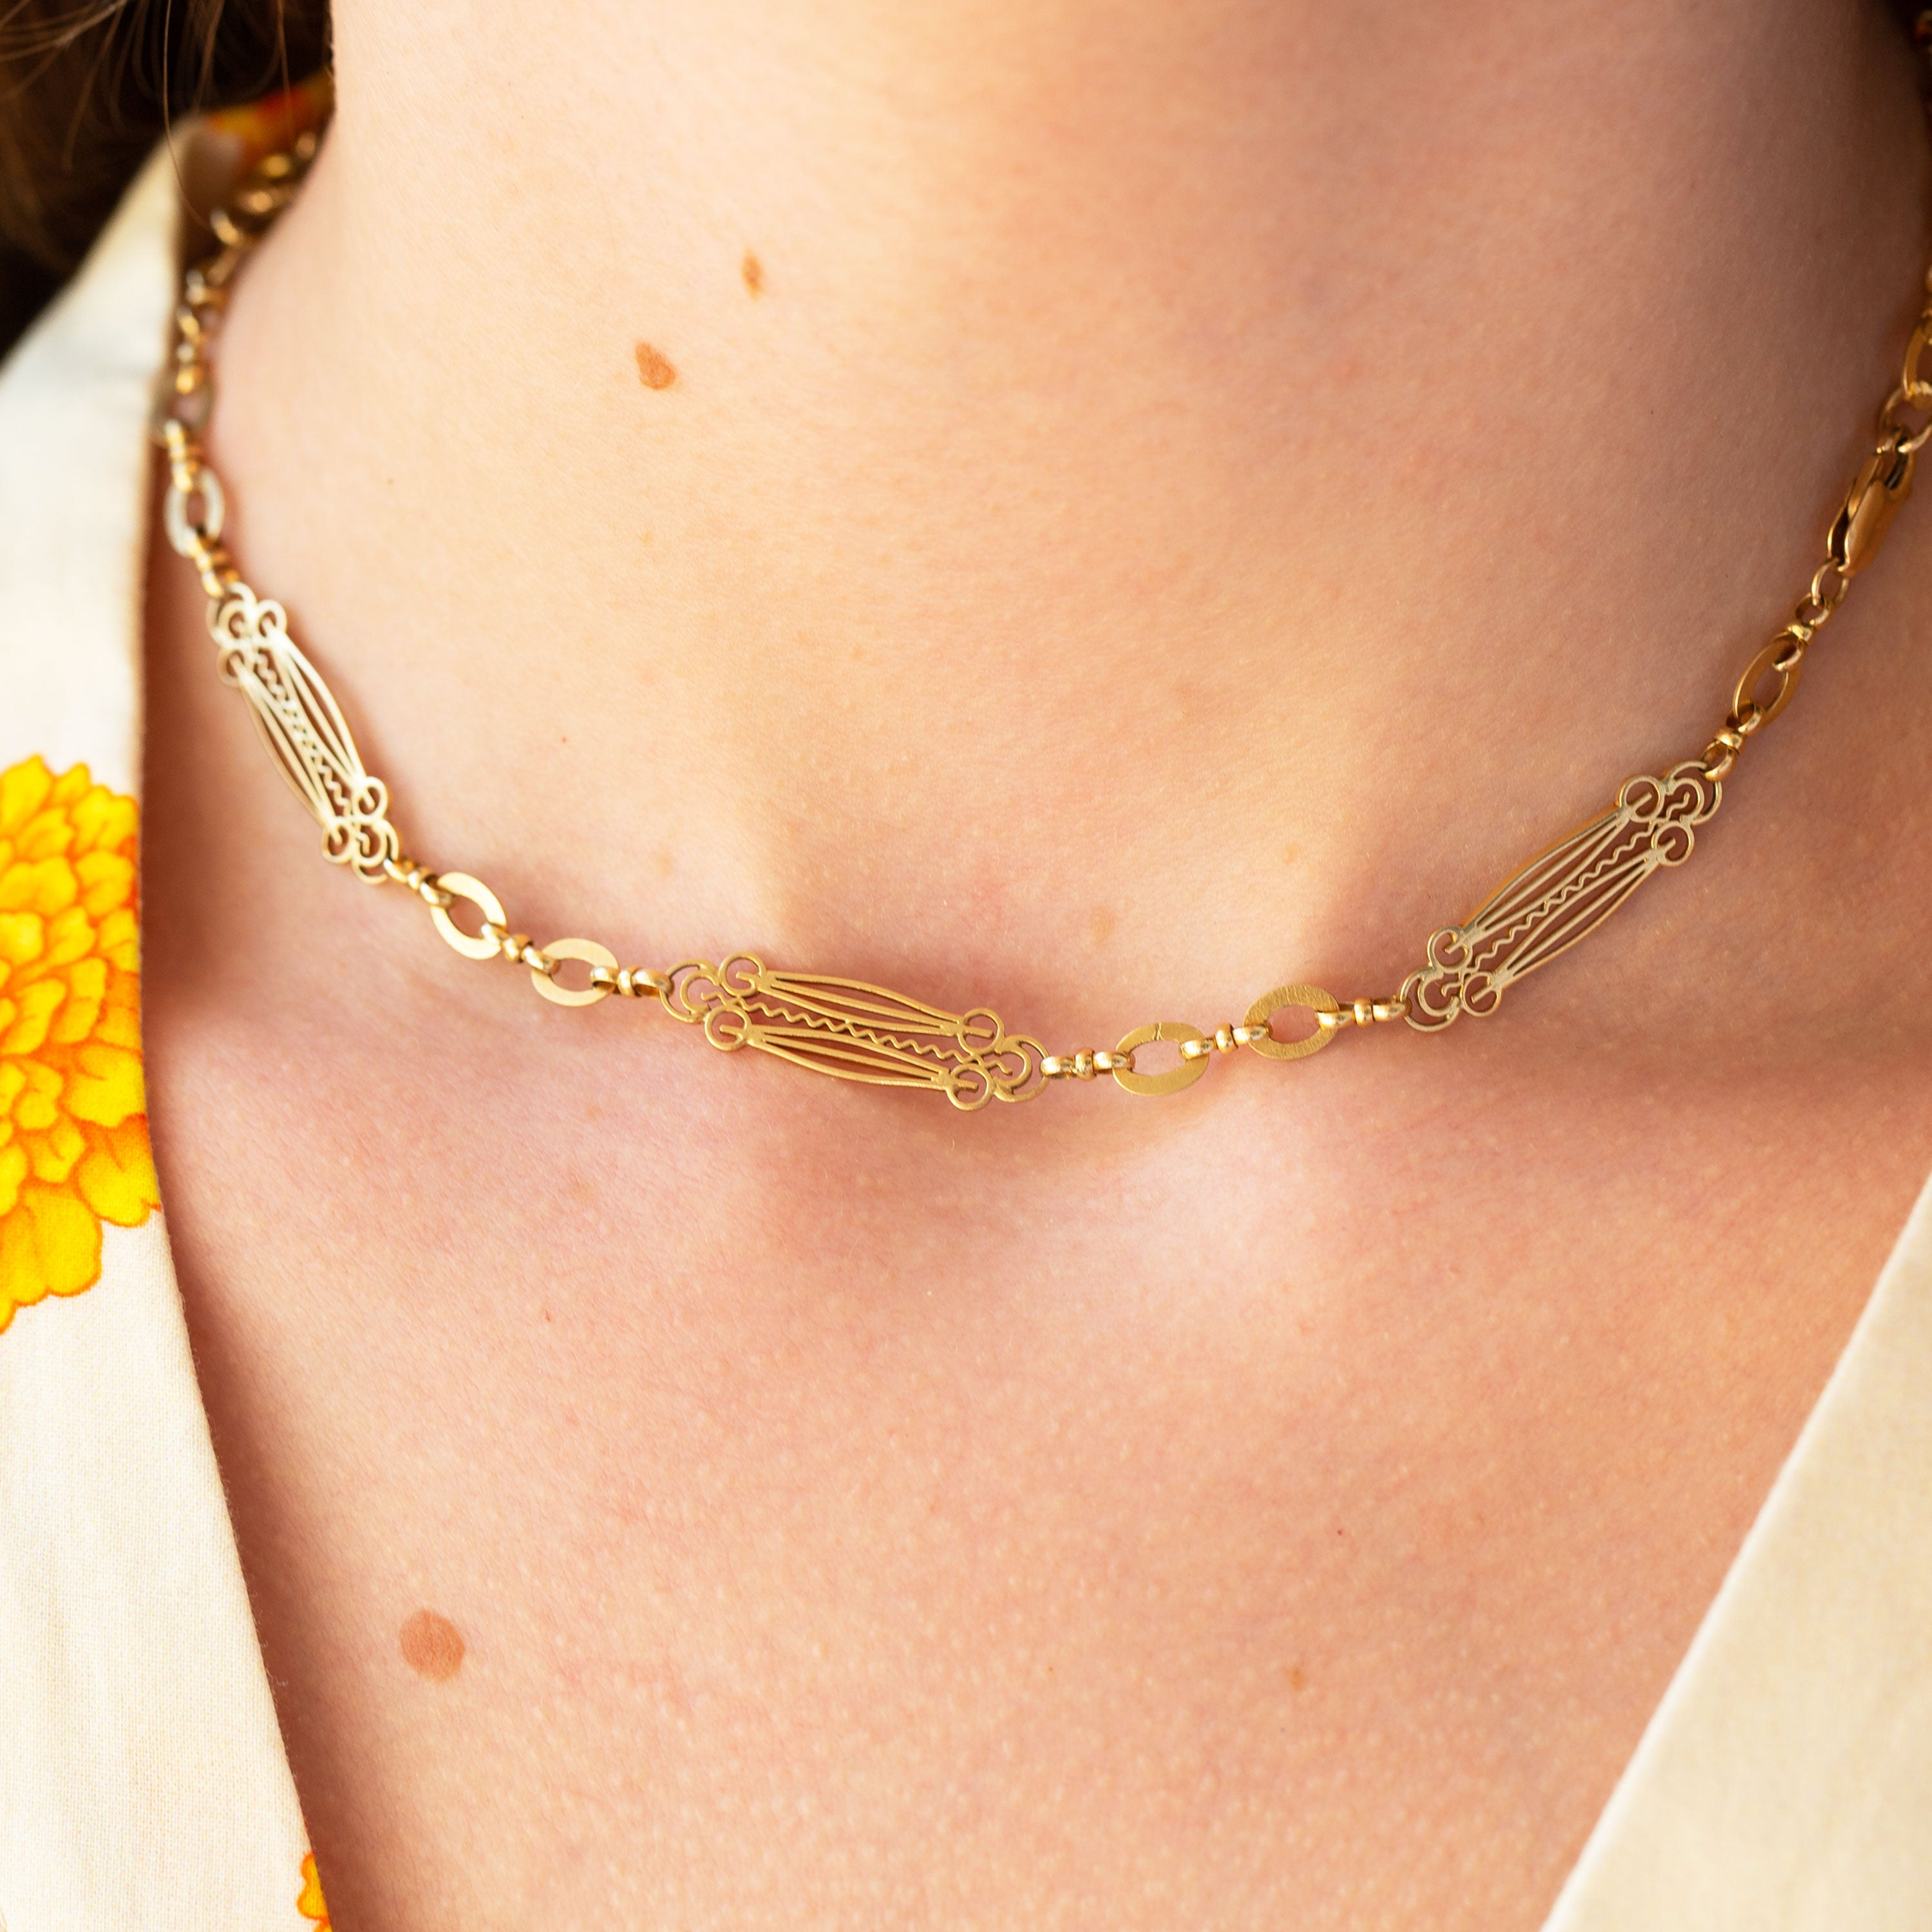 Ornate 14k Gold Chain Bracelets And Convertible Necklace